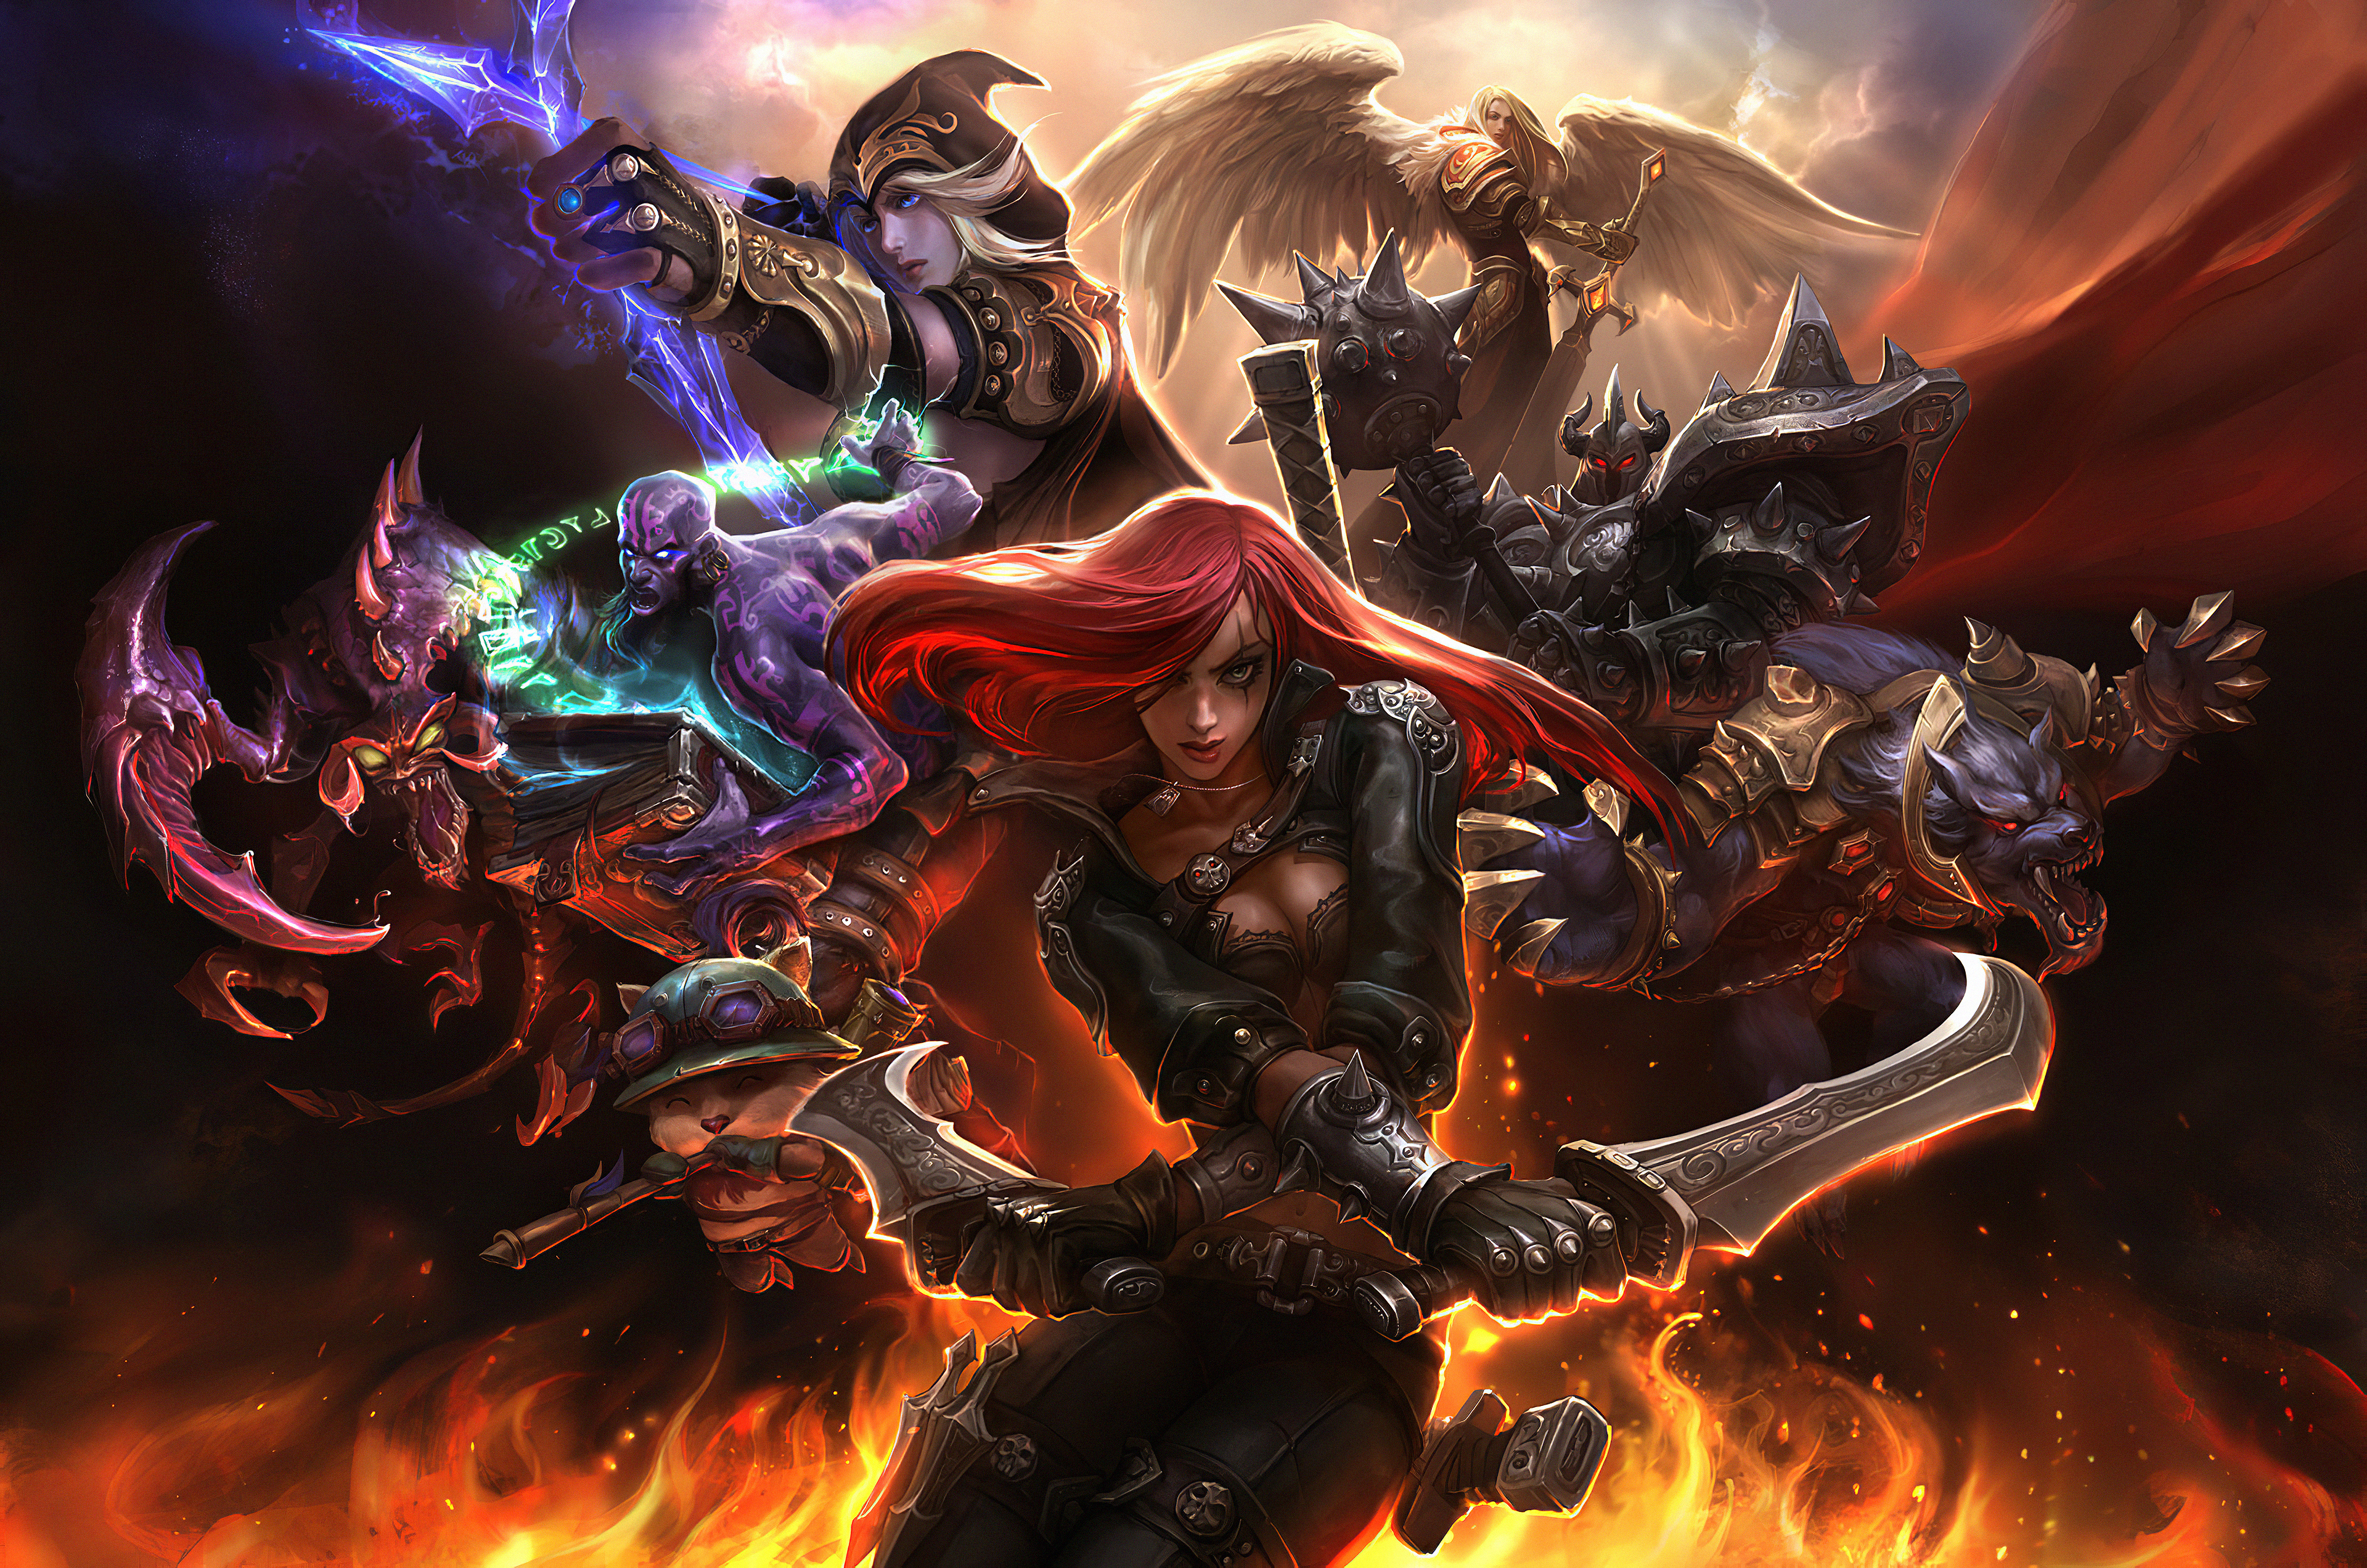 Wallpaper The Characters from League of legends